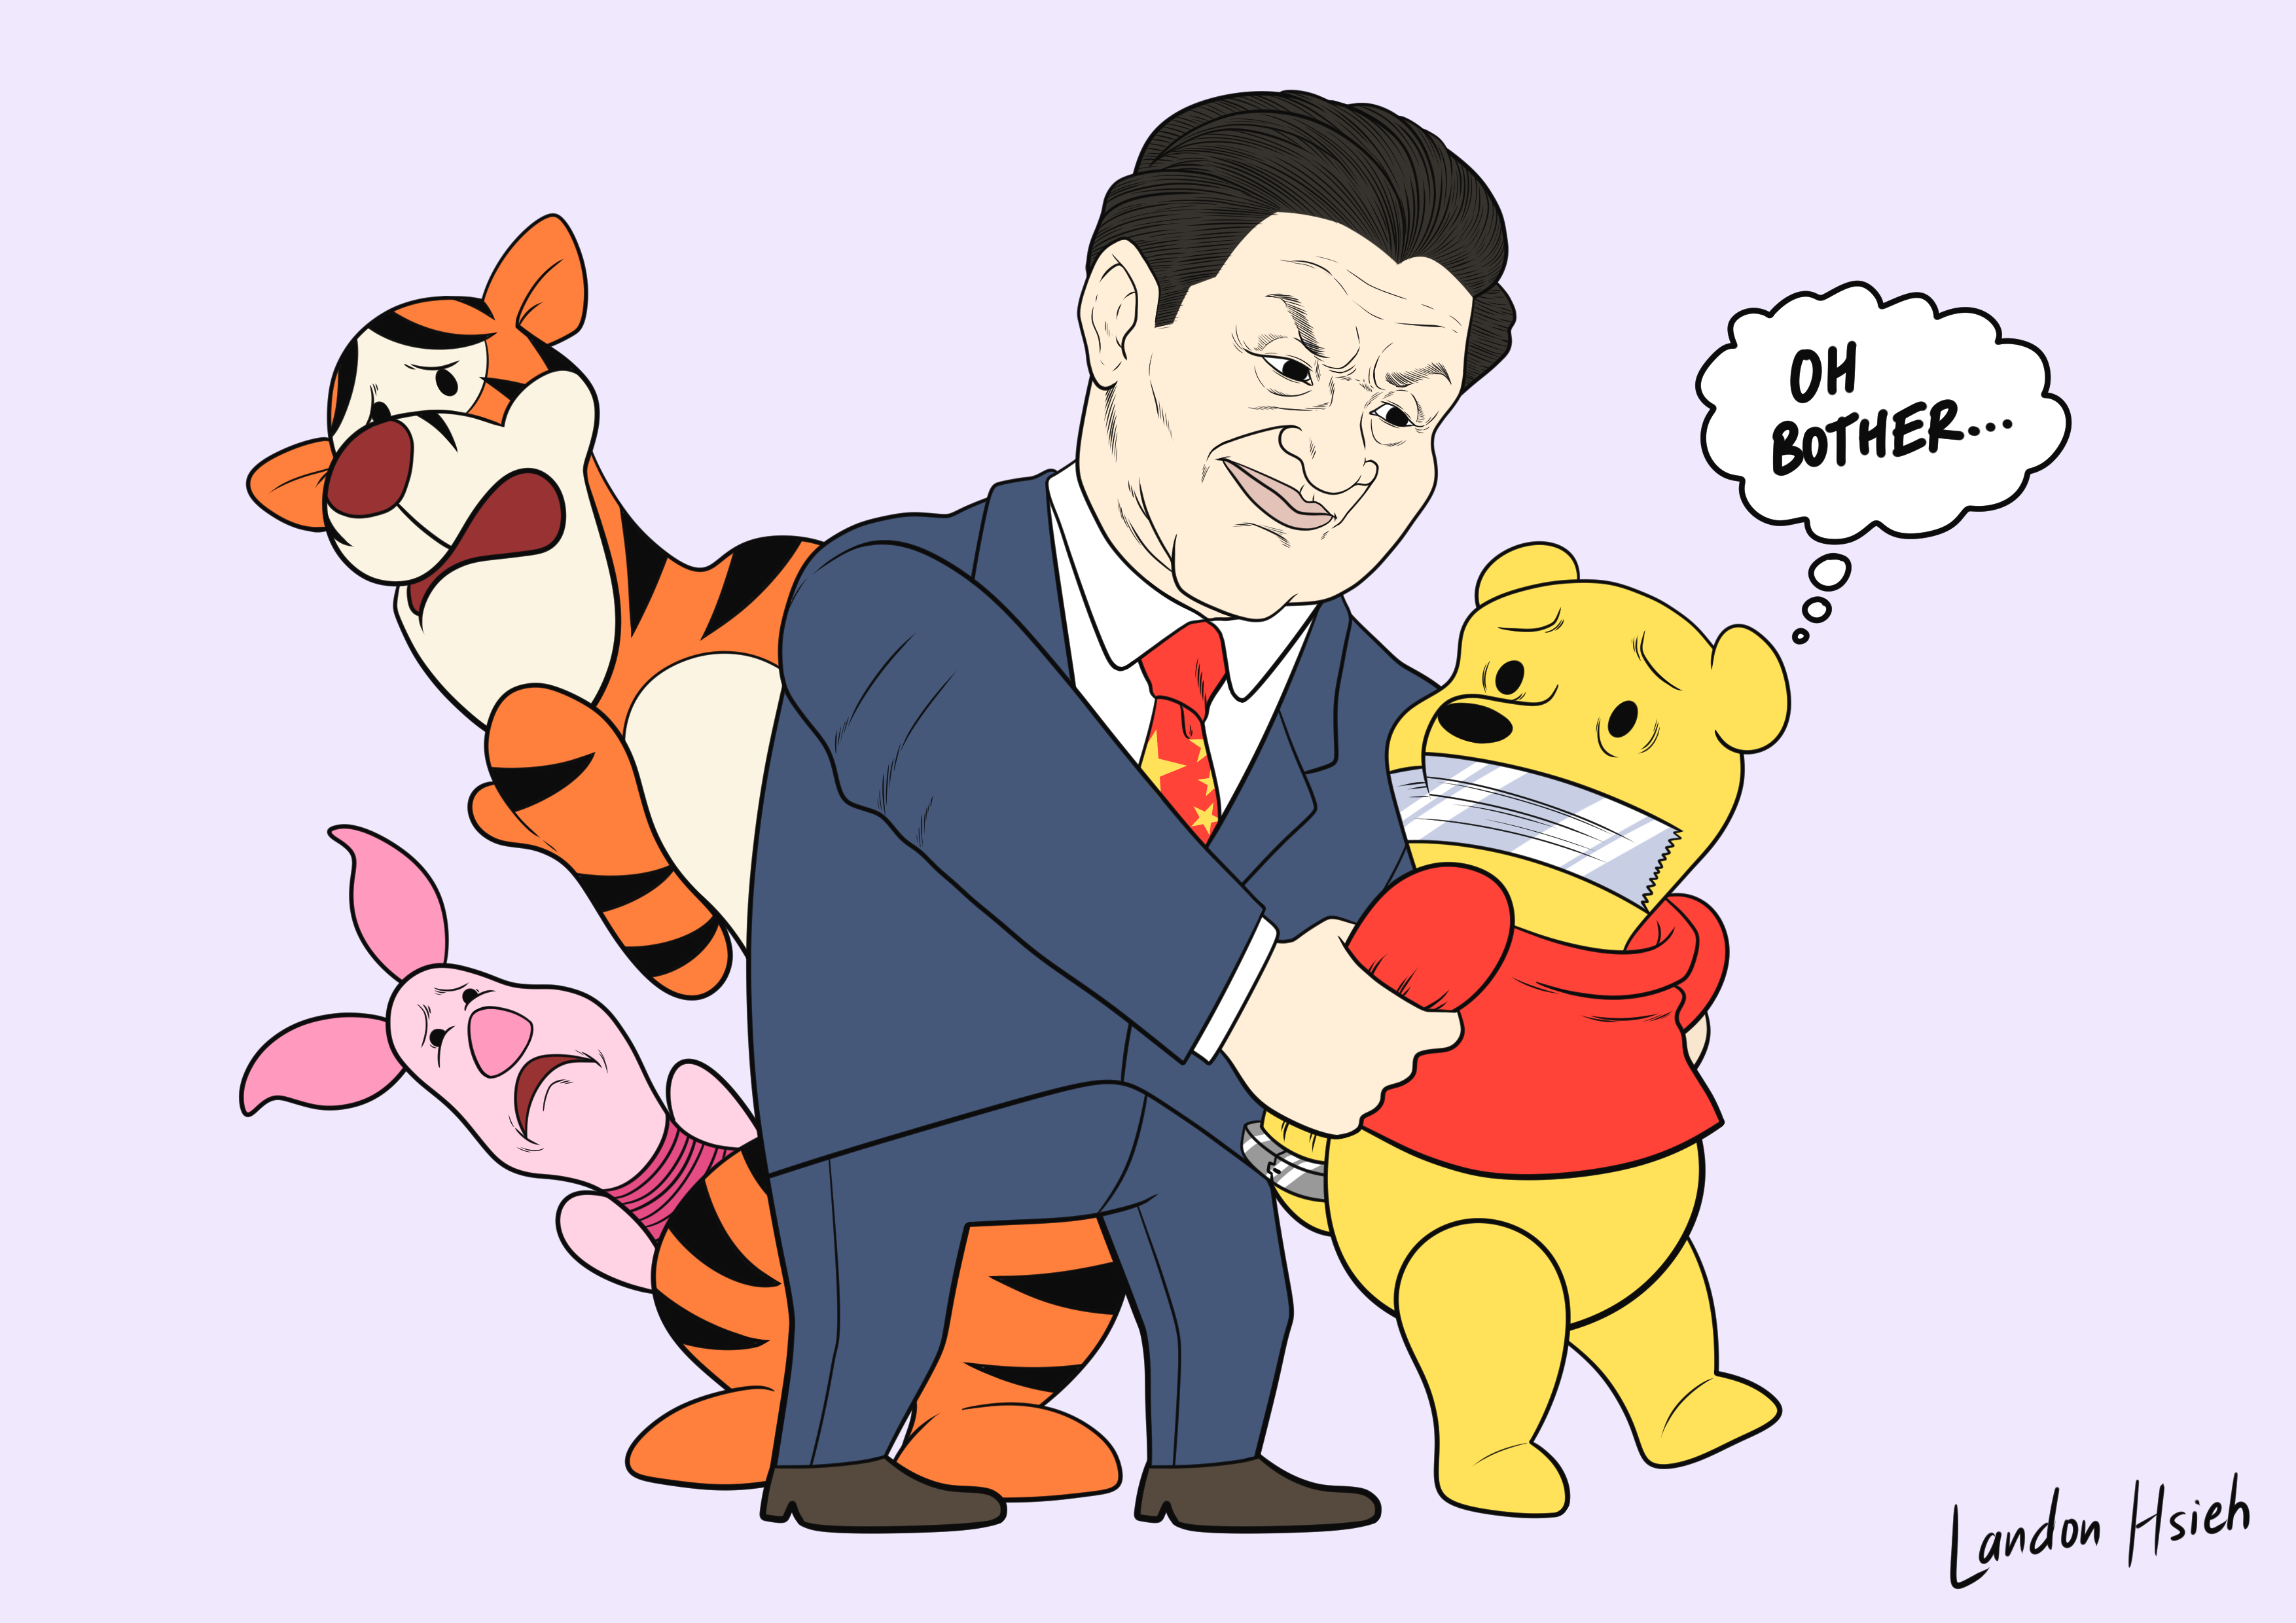 Censor the Pooh